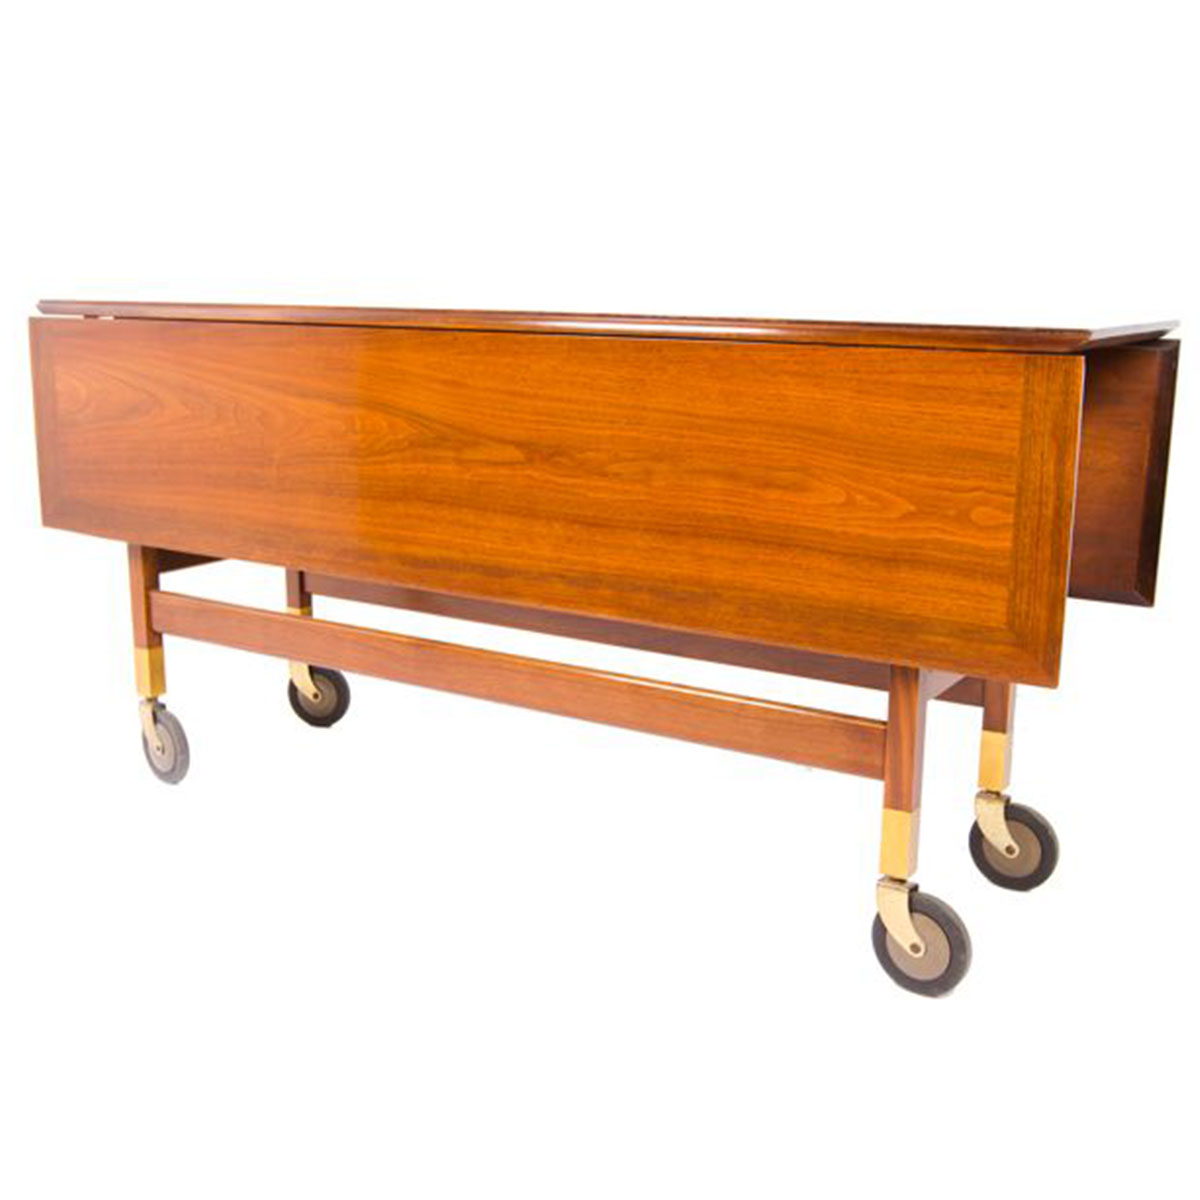 Multifunctional & Unique Console / Dining / Sofa Table w/ Brass Wheels